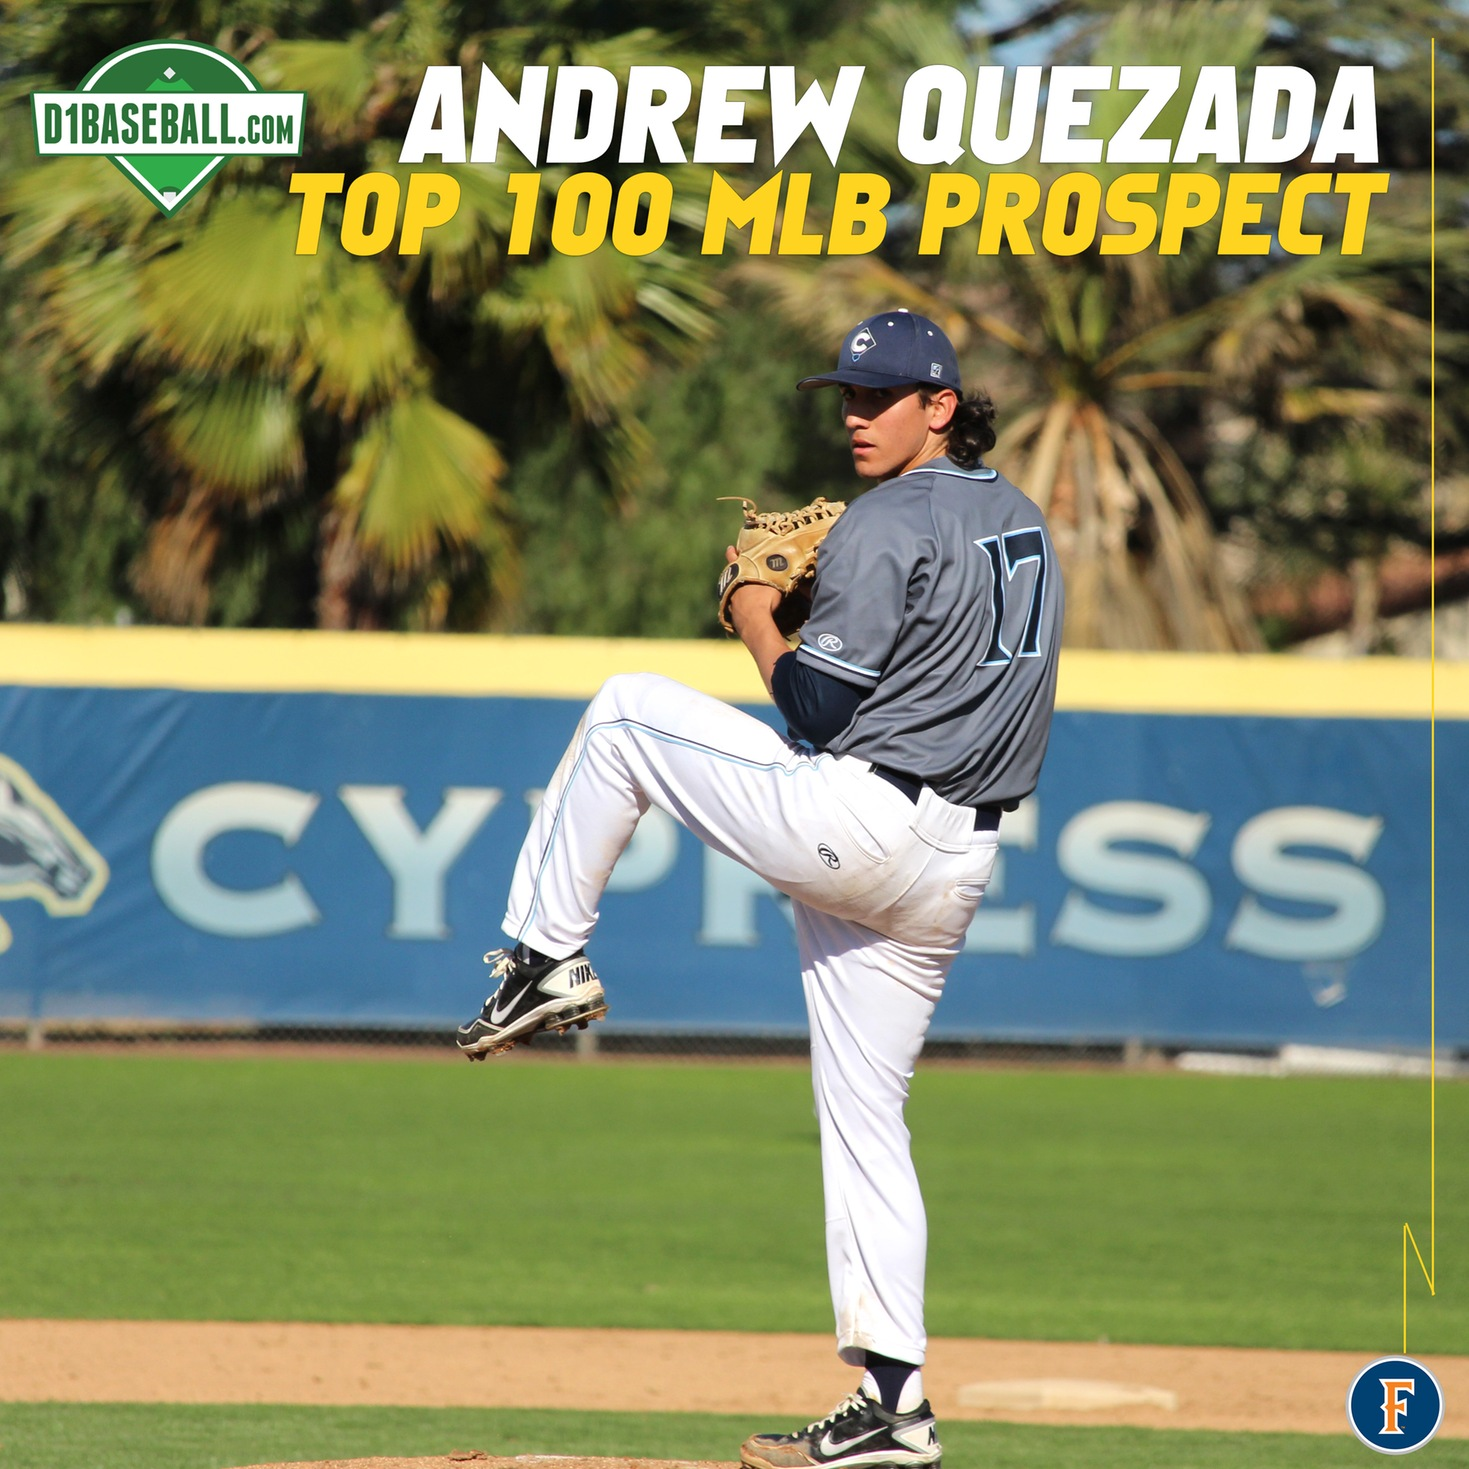 Andrew Quezada Earns Spot on D1Baseball's Top 100 MLB Prospects List